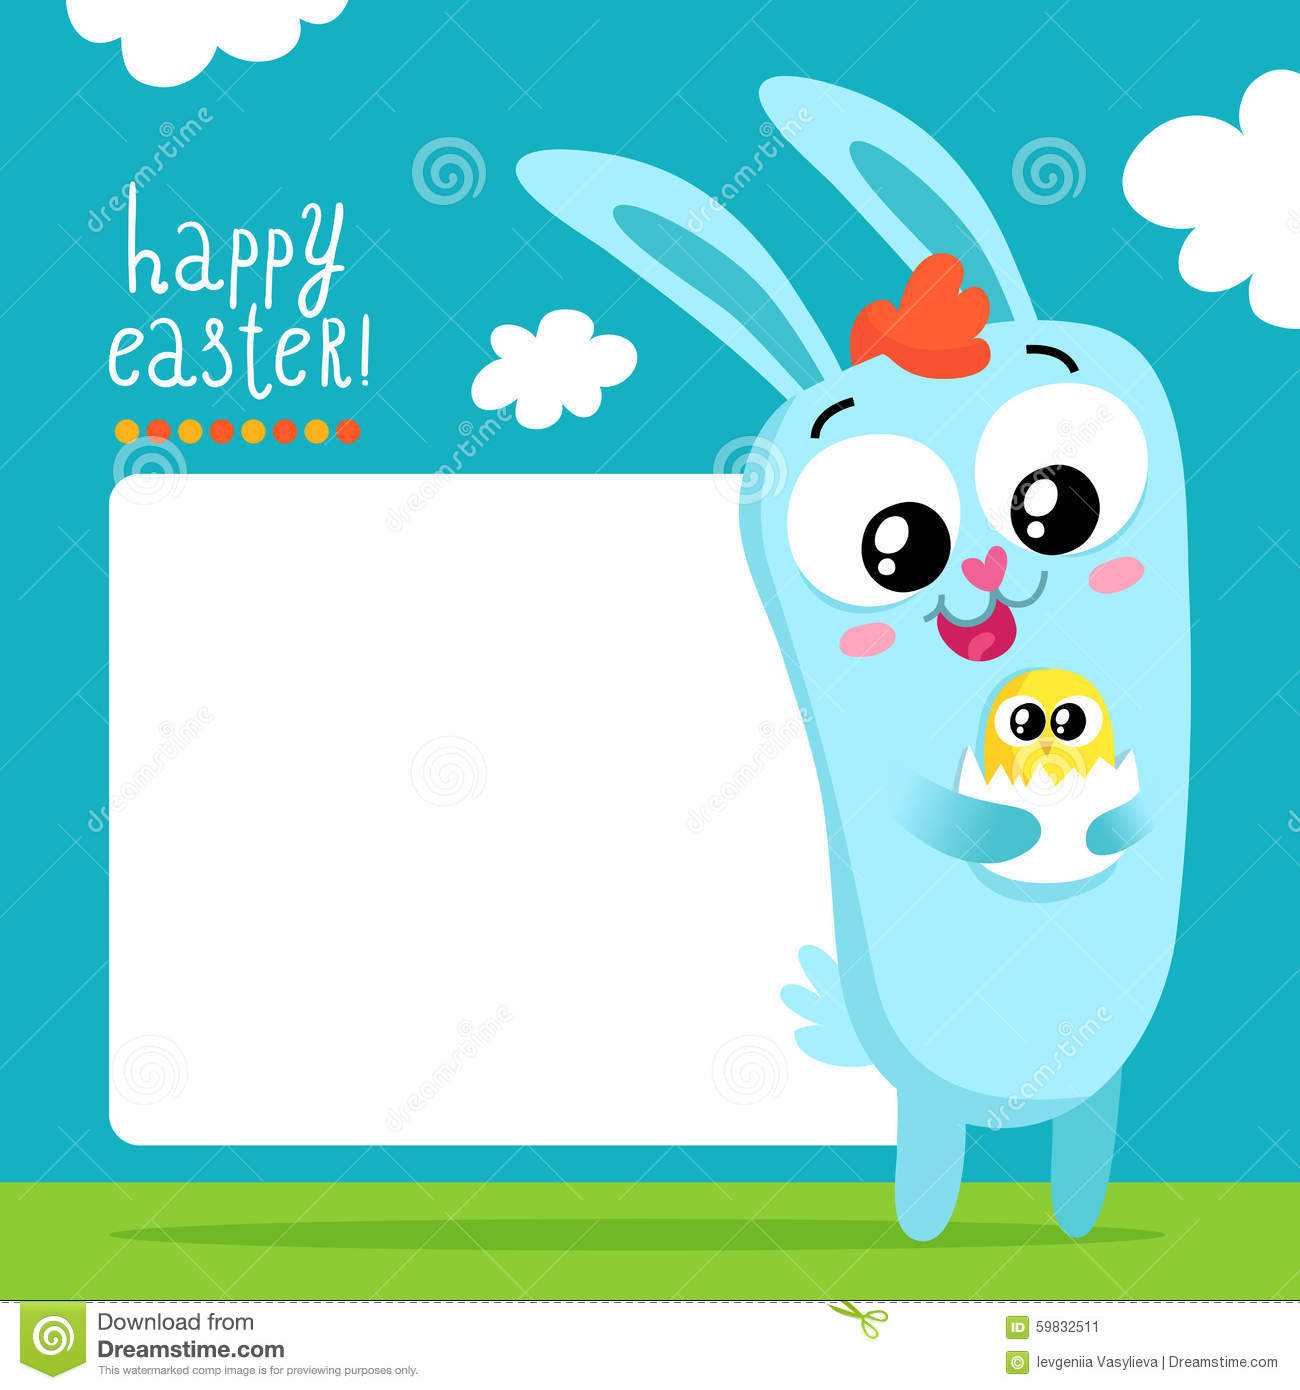 Easter Greeting Card Template With Bunny Holding Egg Stock Vector